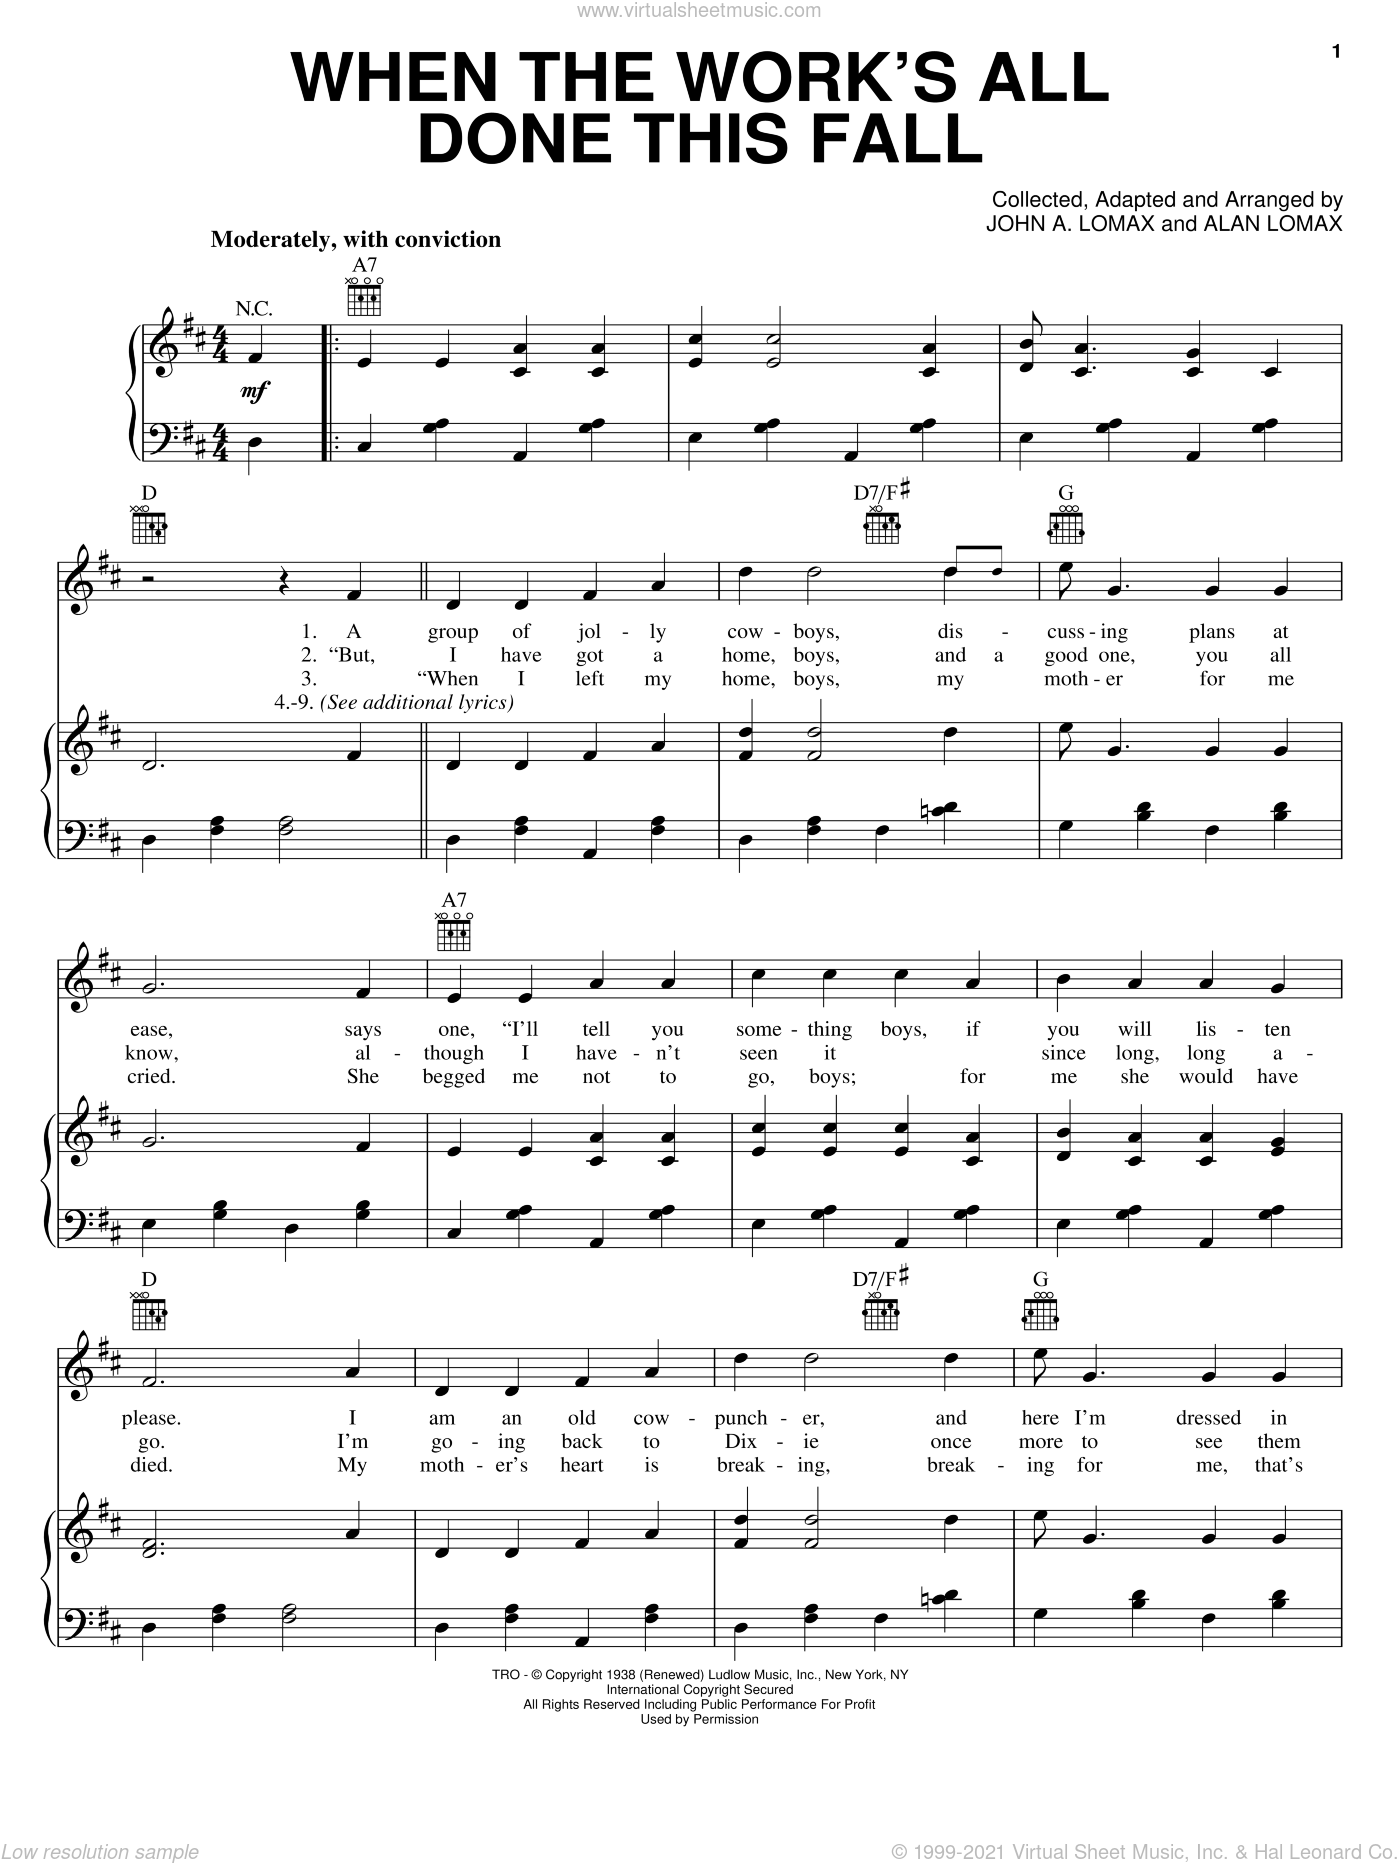 When The Work's All Done This Fall sheet music for voice, piano or guitar by John A. Lomax